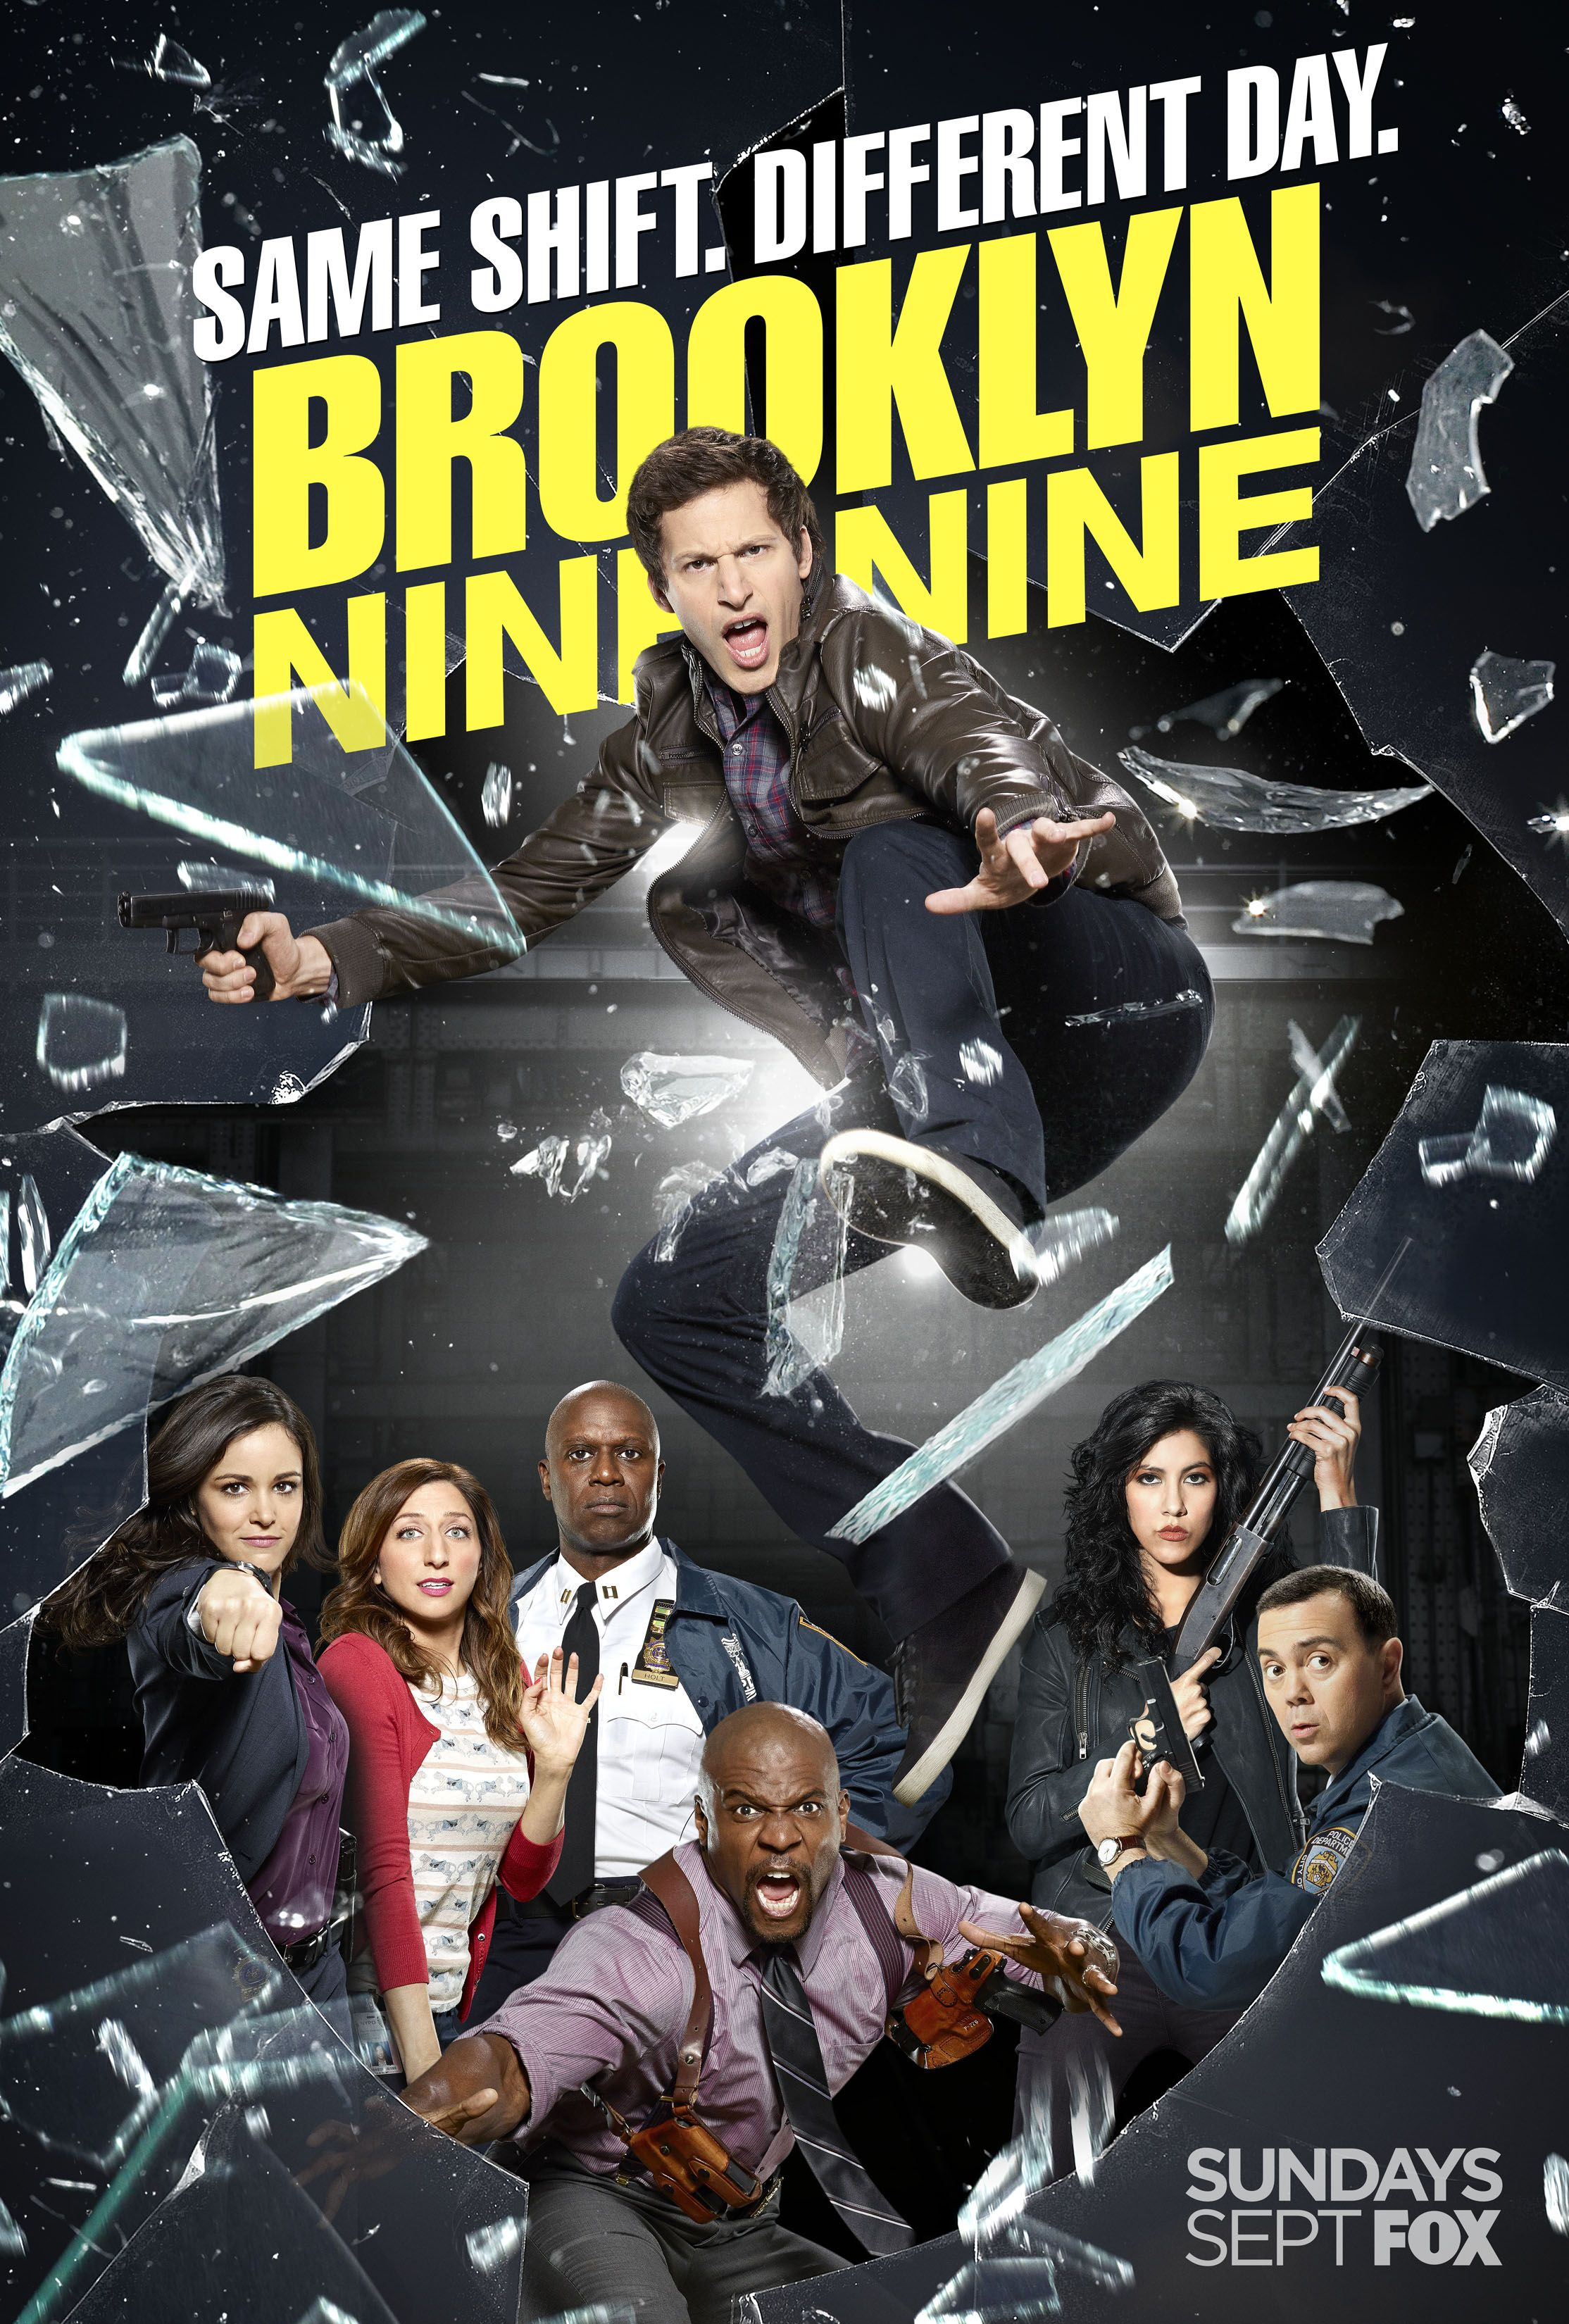 Brooklyn Nine Nine Season 2 Poster Promises Same Shift On A